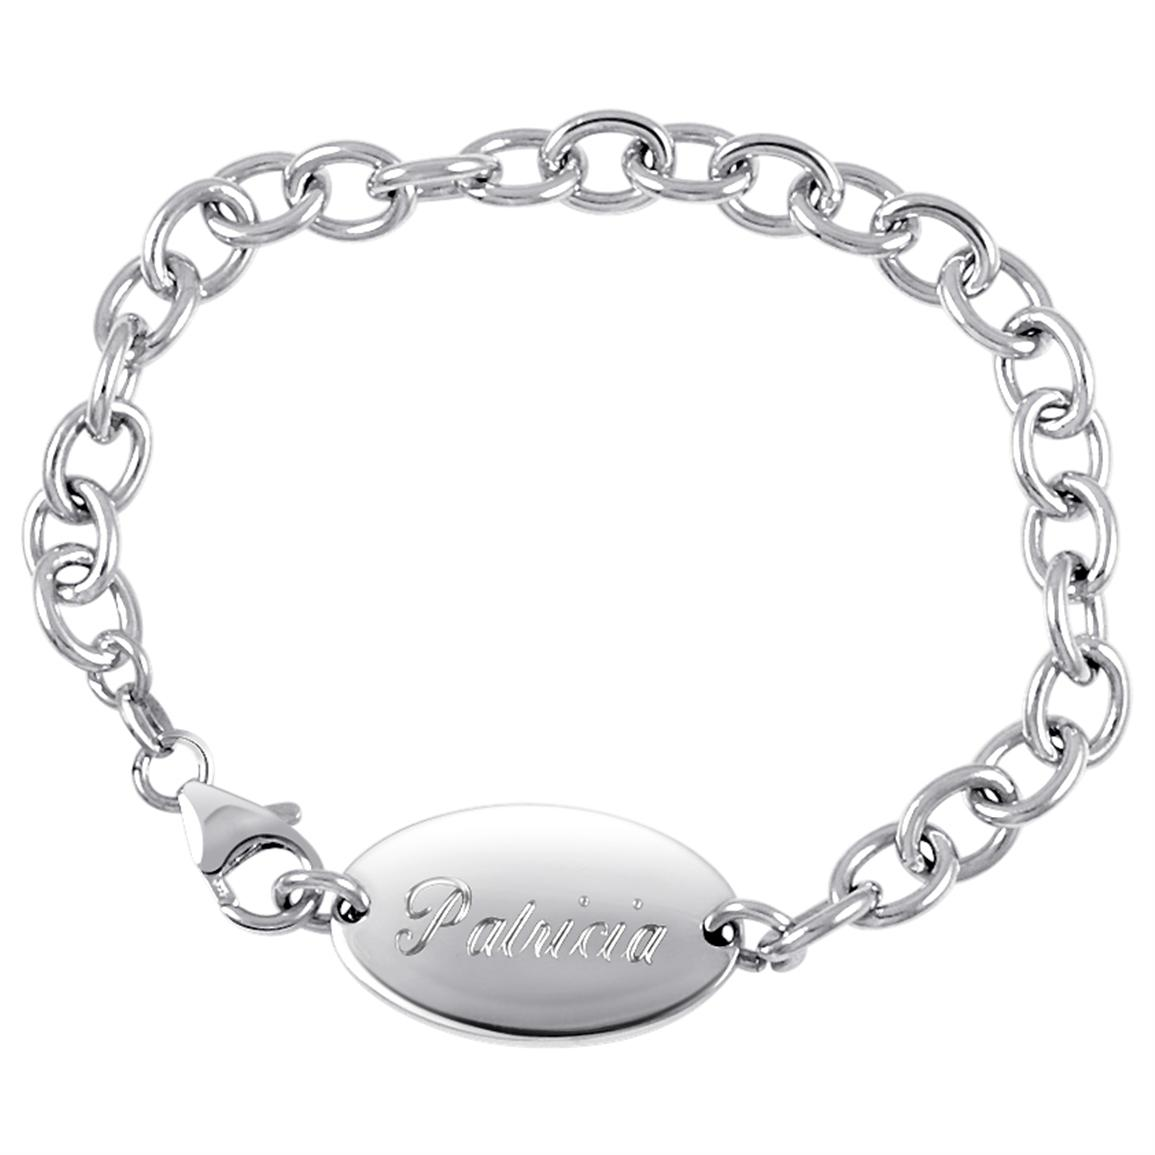 Hampden Sterling Silver Round Oval Name Bracelet, Lobster Claw Clasp